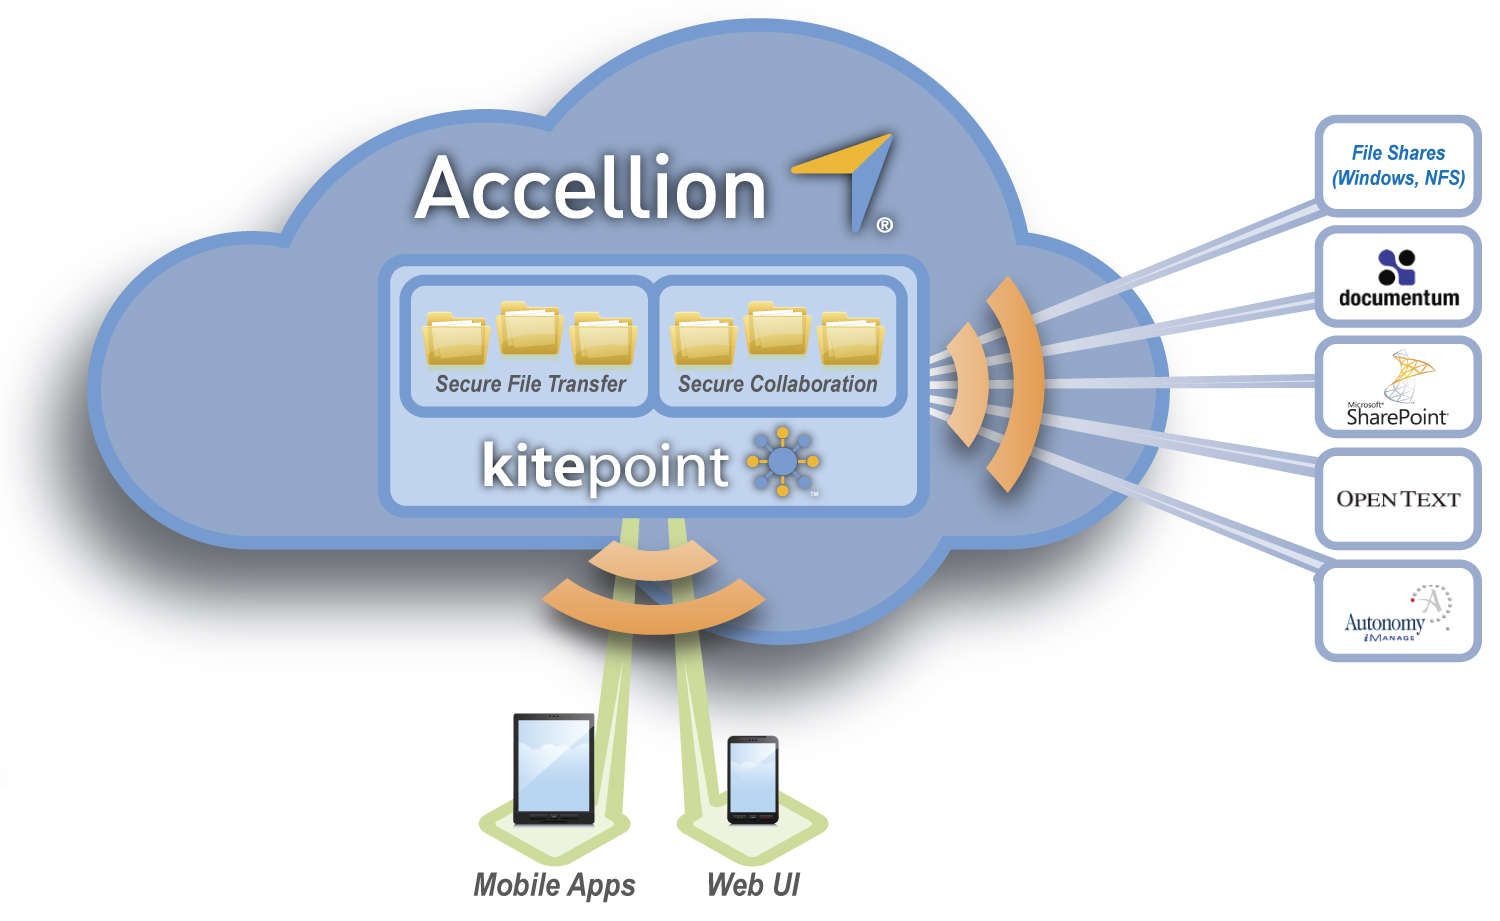 Accellion-kitepoint-diagram